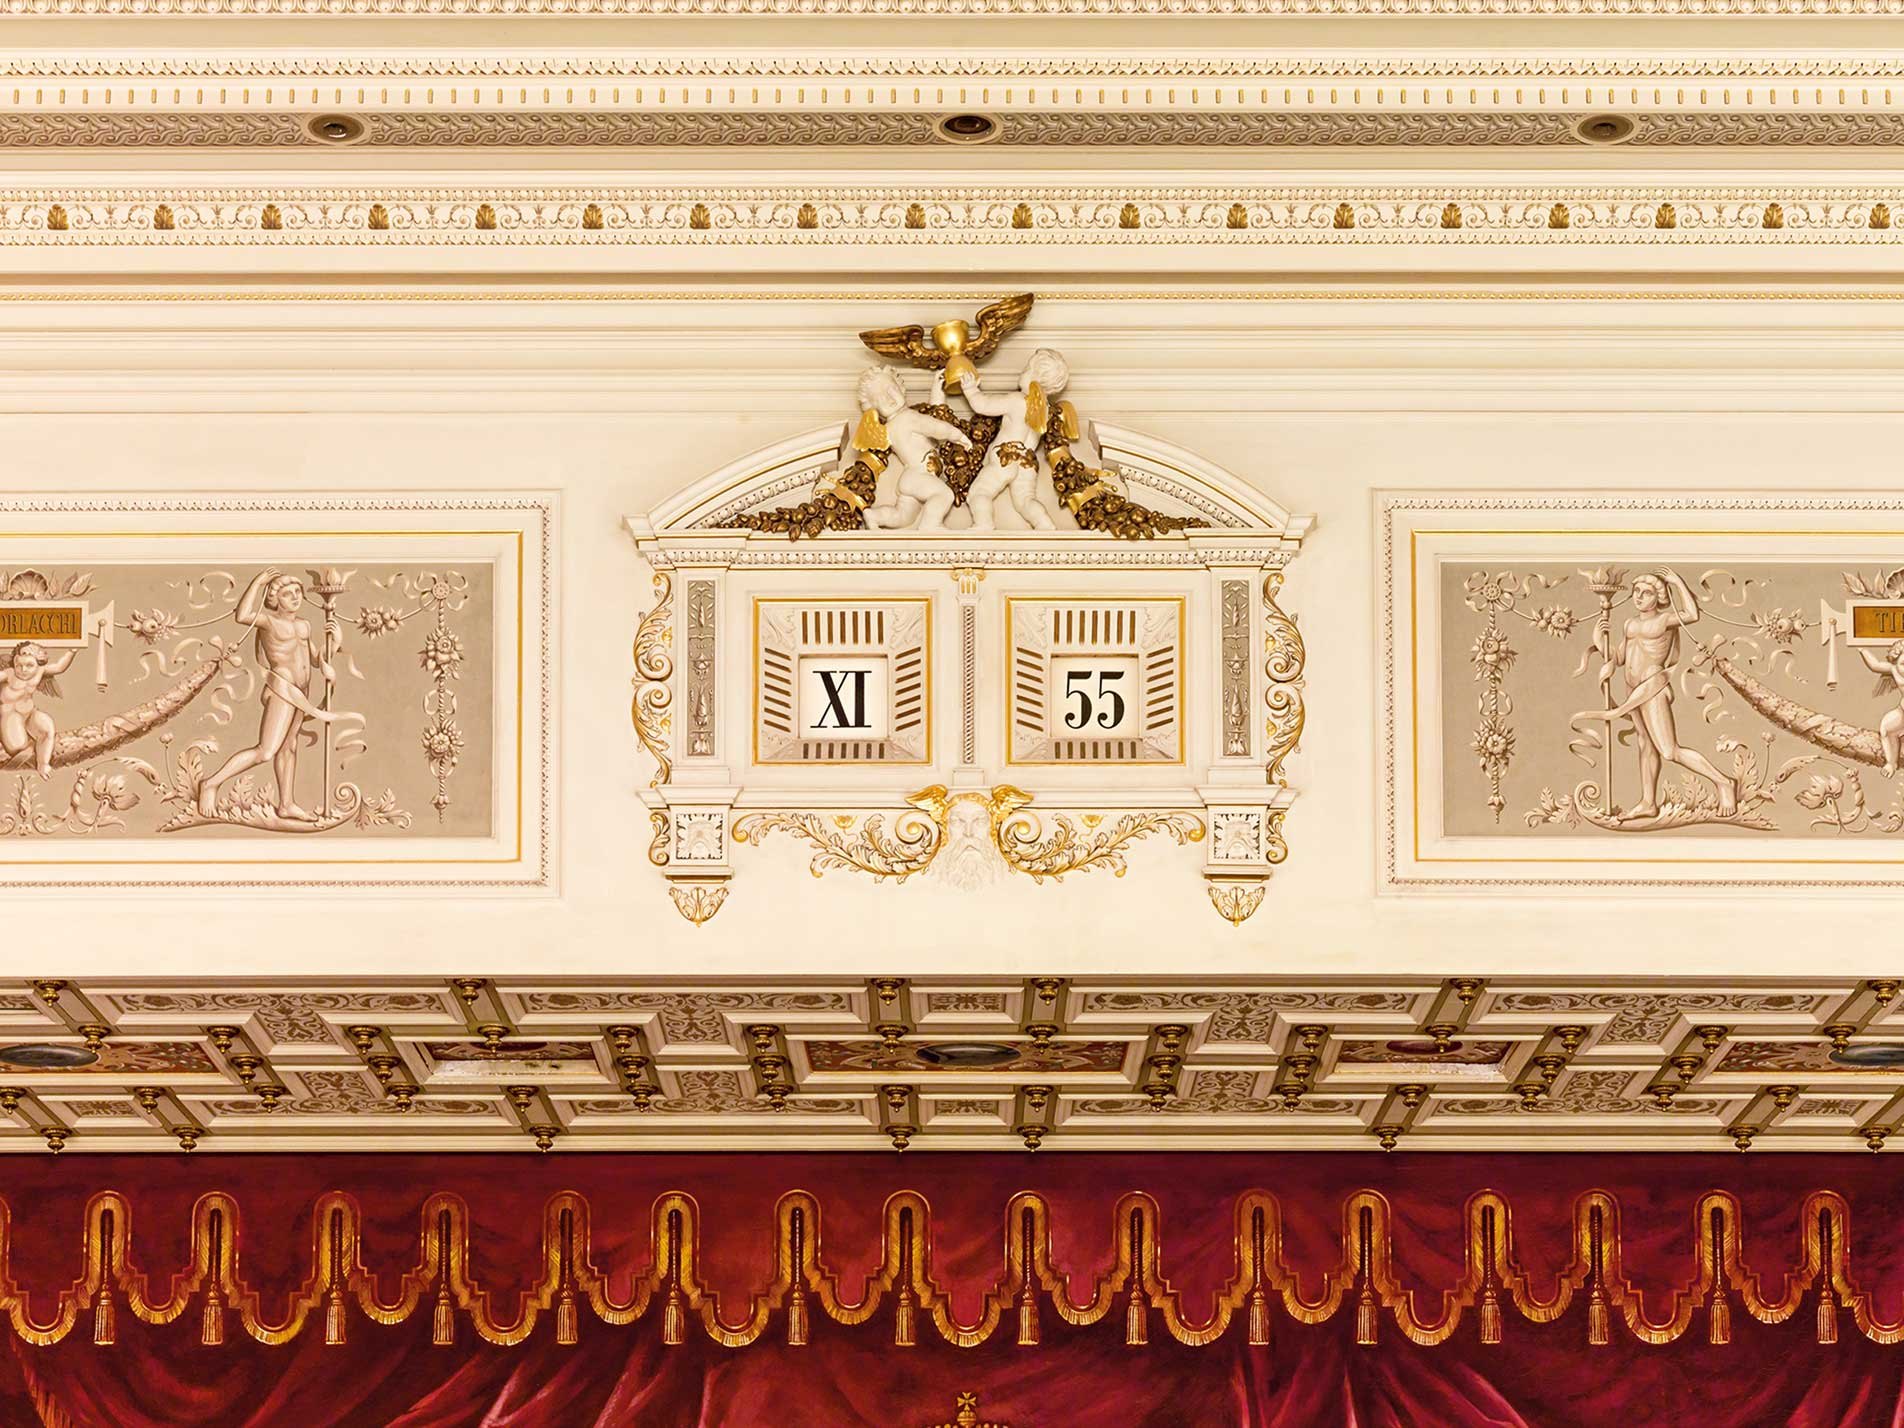 The five minute digital display clock above the stage at the Dresden Opera House for A Collected Man Lonodn